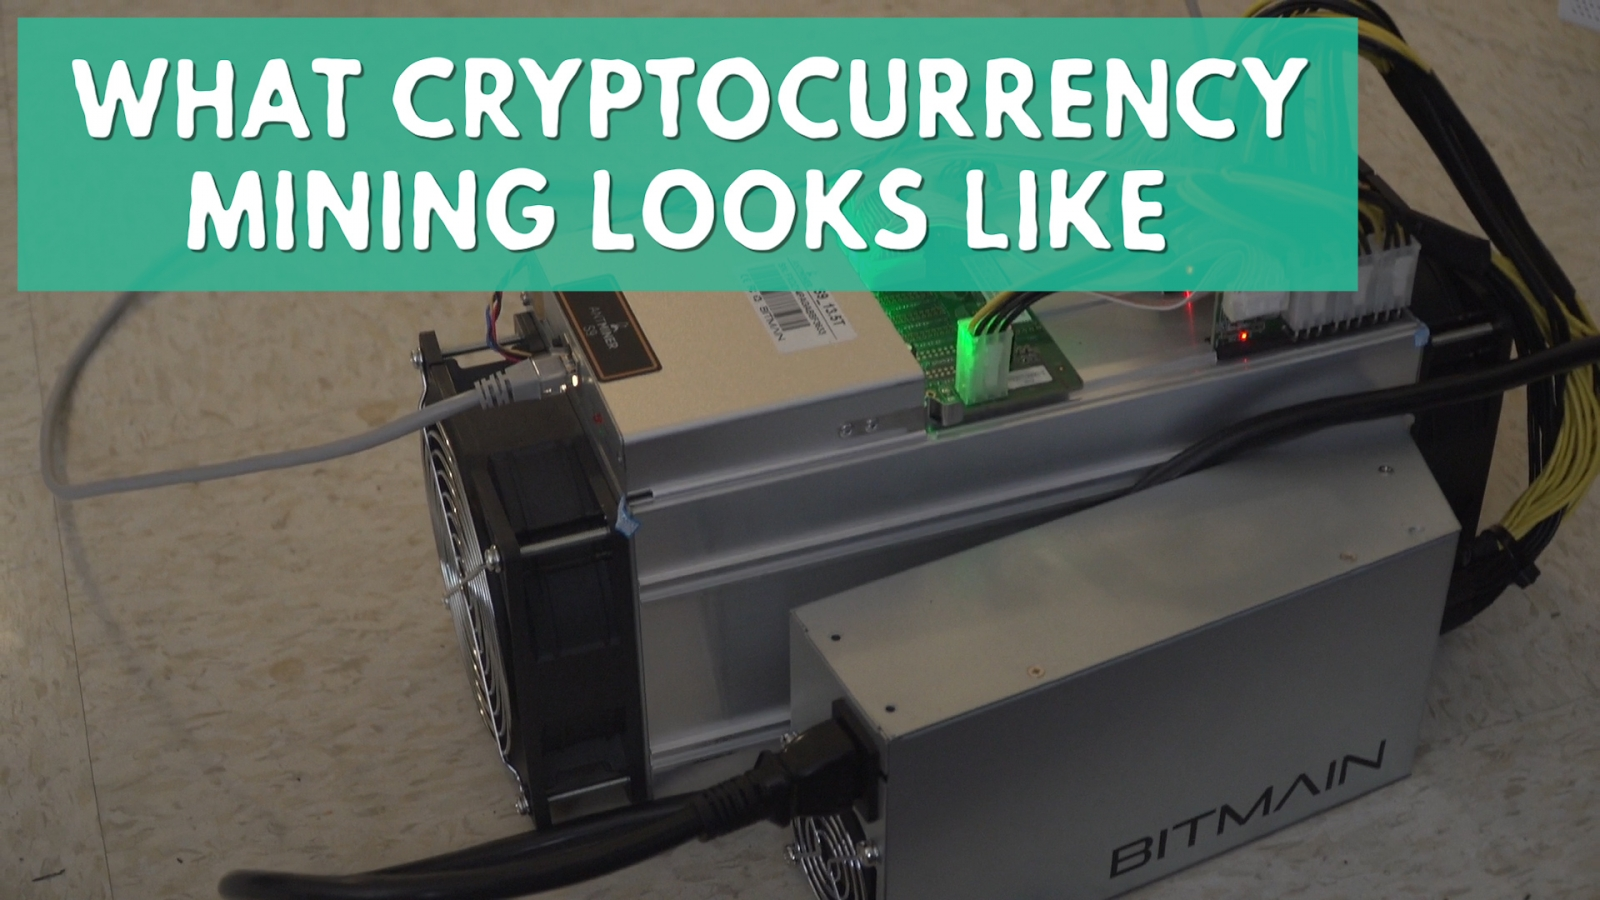 Cryptocurrency: This Is What Bitcoin Mining Looks Like